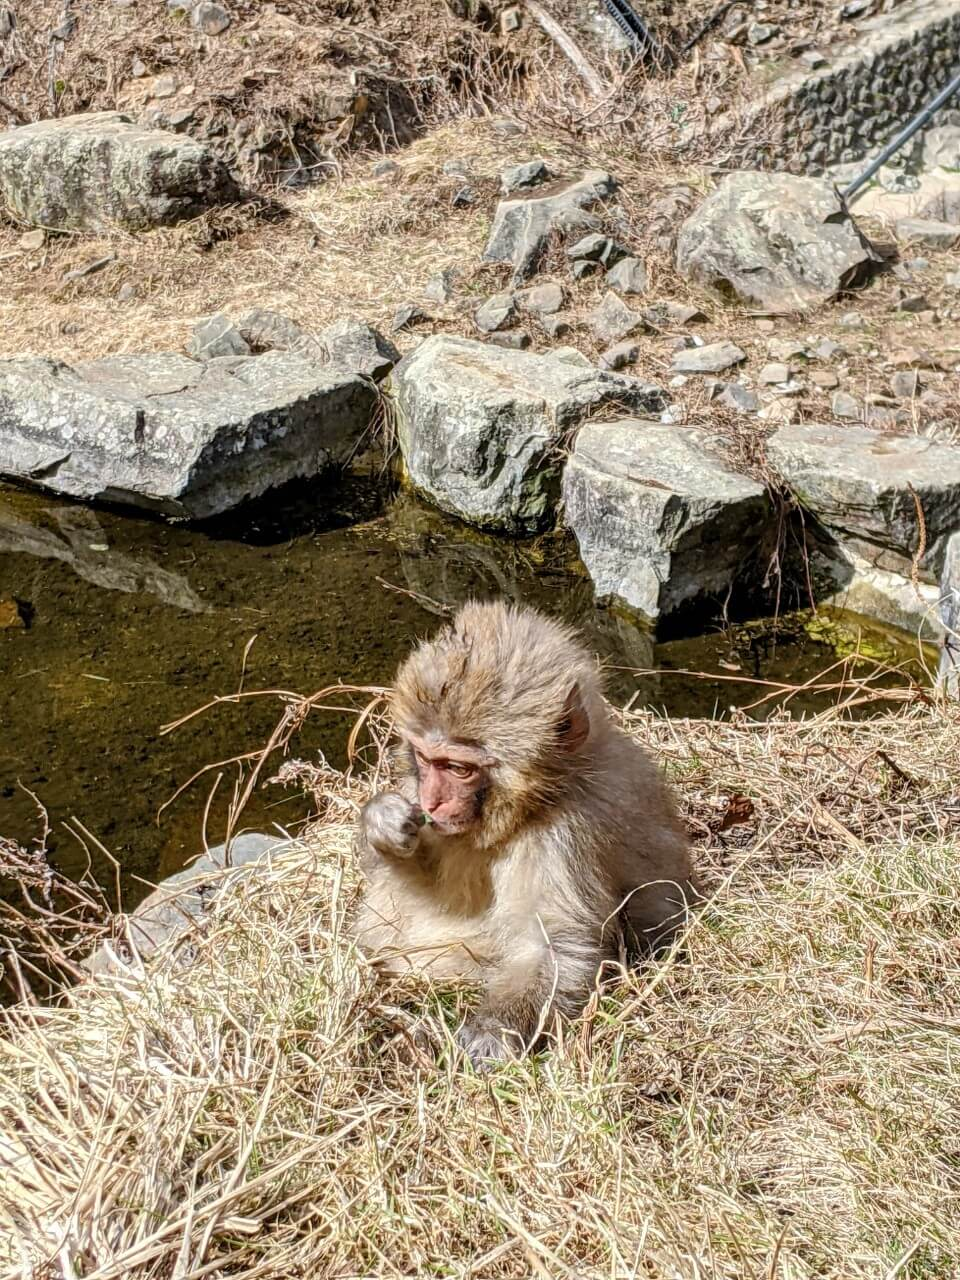 jigokudani-monkey-park-march-2021